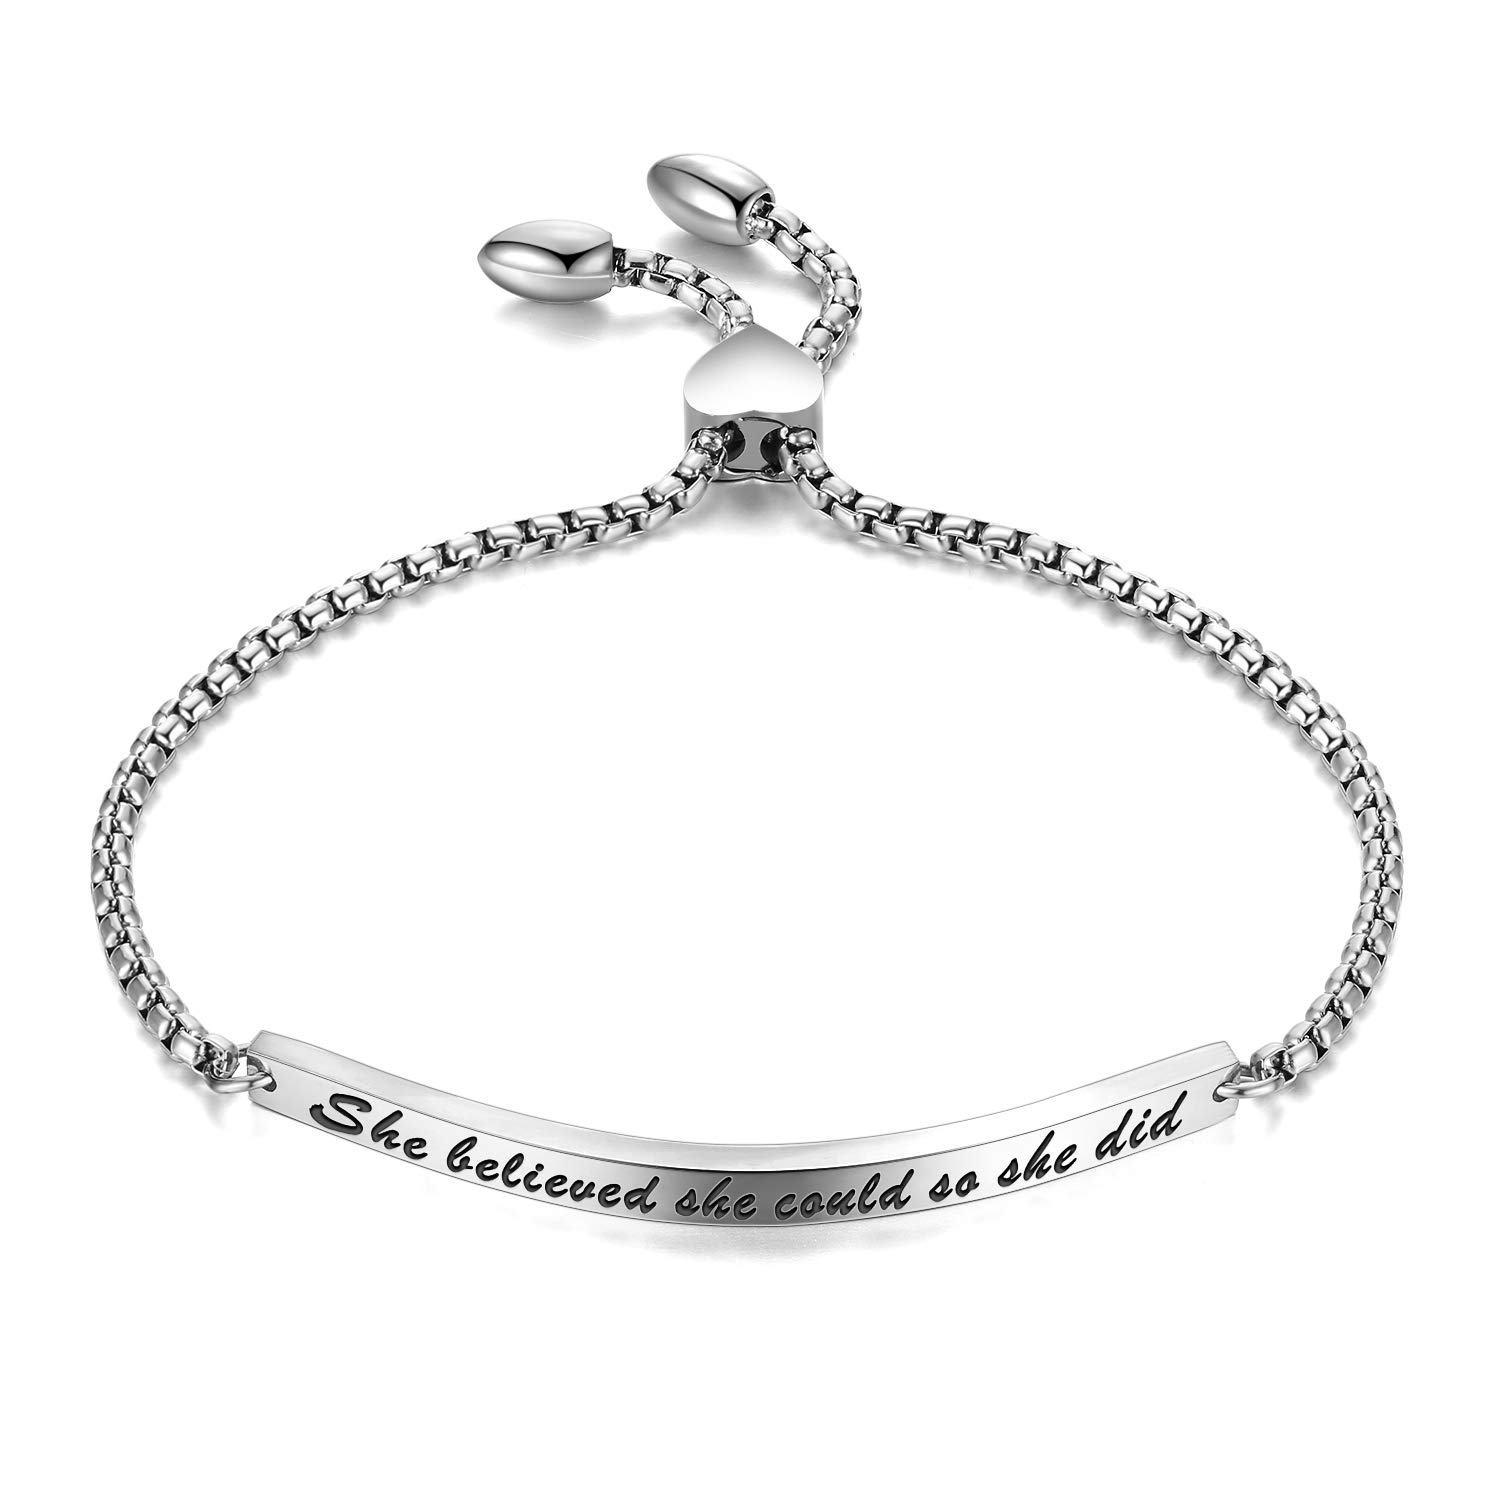 GAGAFEEL Cuff Bangle Inspirational Jewelry She Believed she Could so she did Women Bar Bracelet Link Birthday Xmas Gift (Silver)